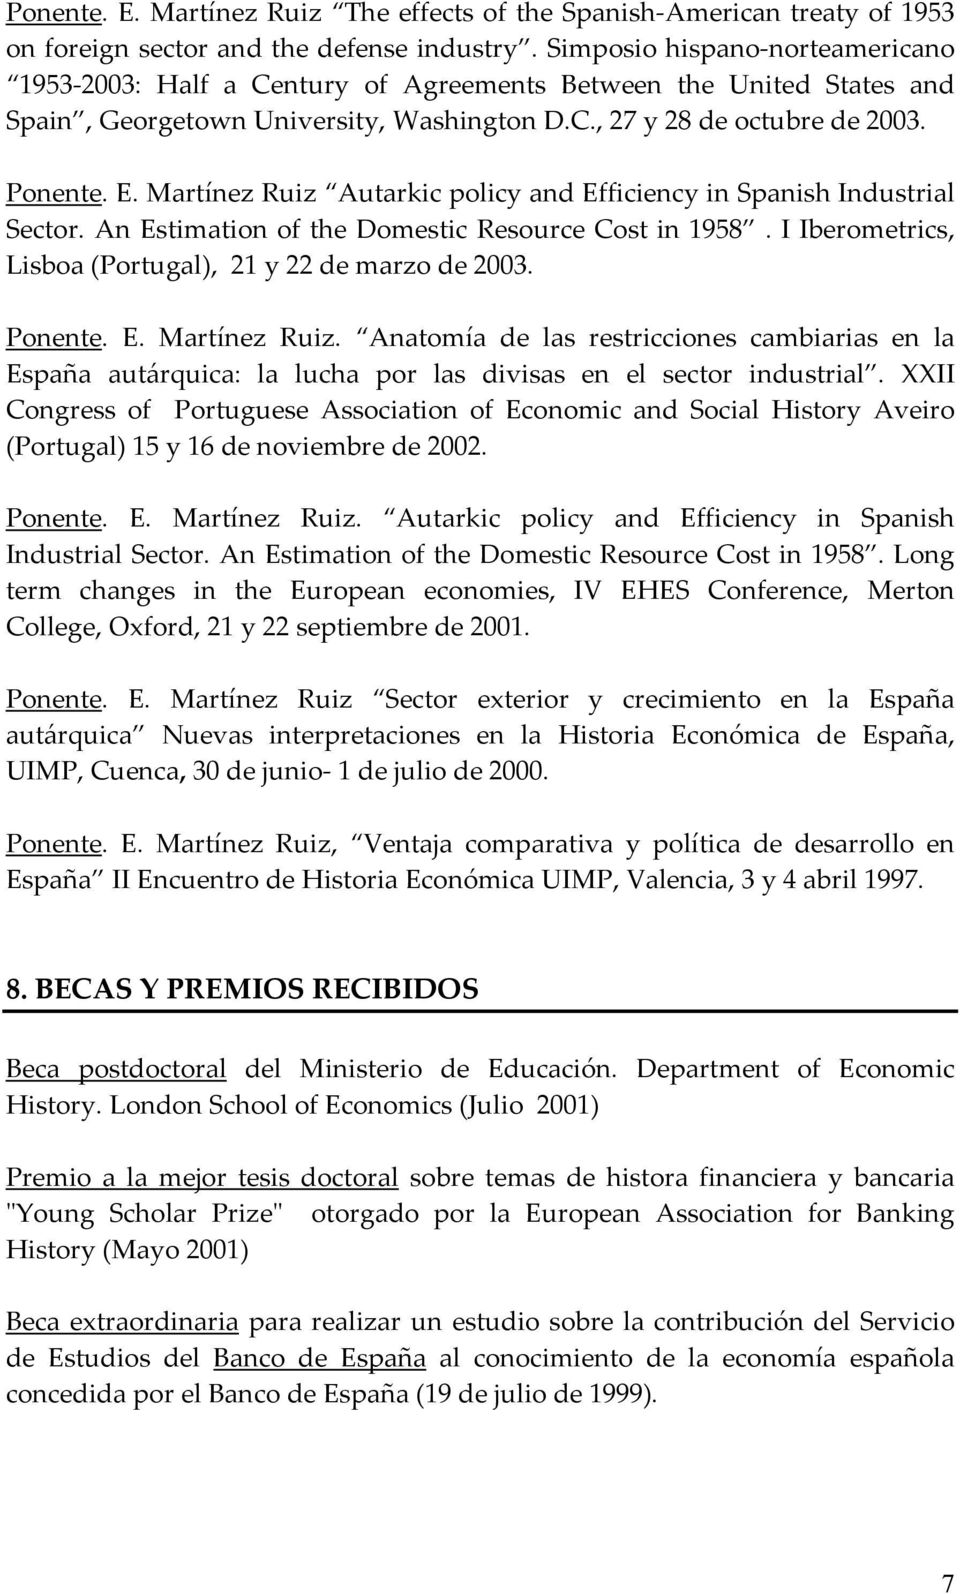 Martínez Ruiz Autarkic policy and Efficiency in Spanish Industrial Sector. An Estimation of the Domestic Resource Cost in 1958. I Iberometrics, Lisboa (Portugal), 21 y 22 de marzo de 2003. Ponente. E. Martínez Ruiz.